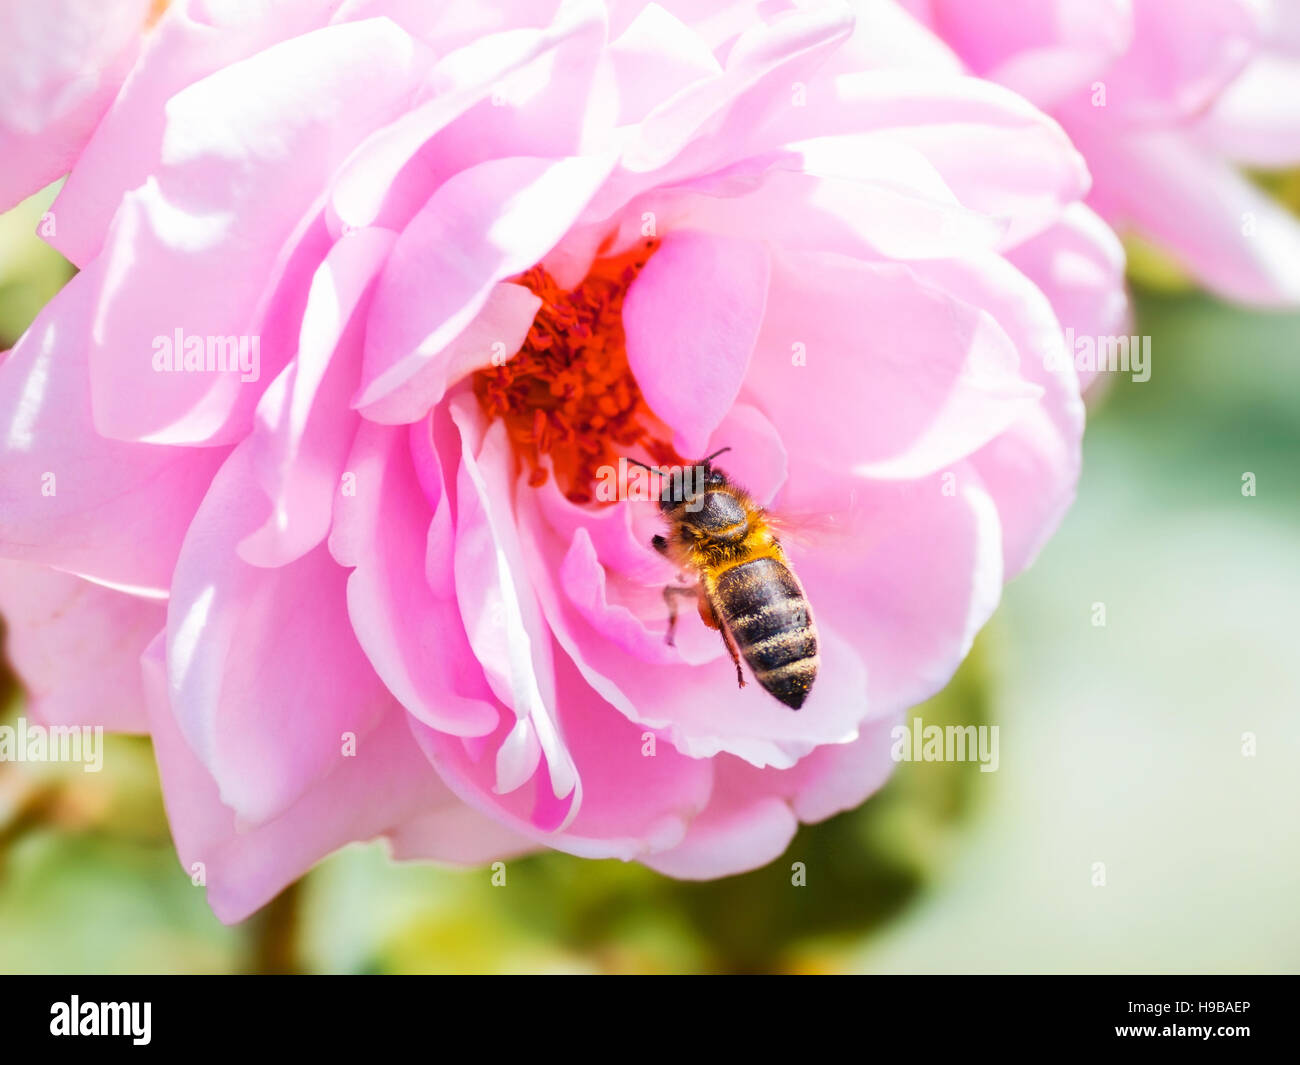 Bee Pollinating a Rose - Stock Image